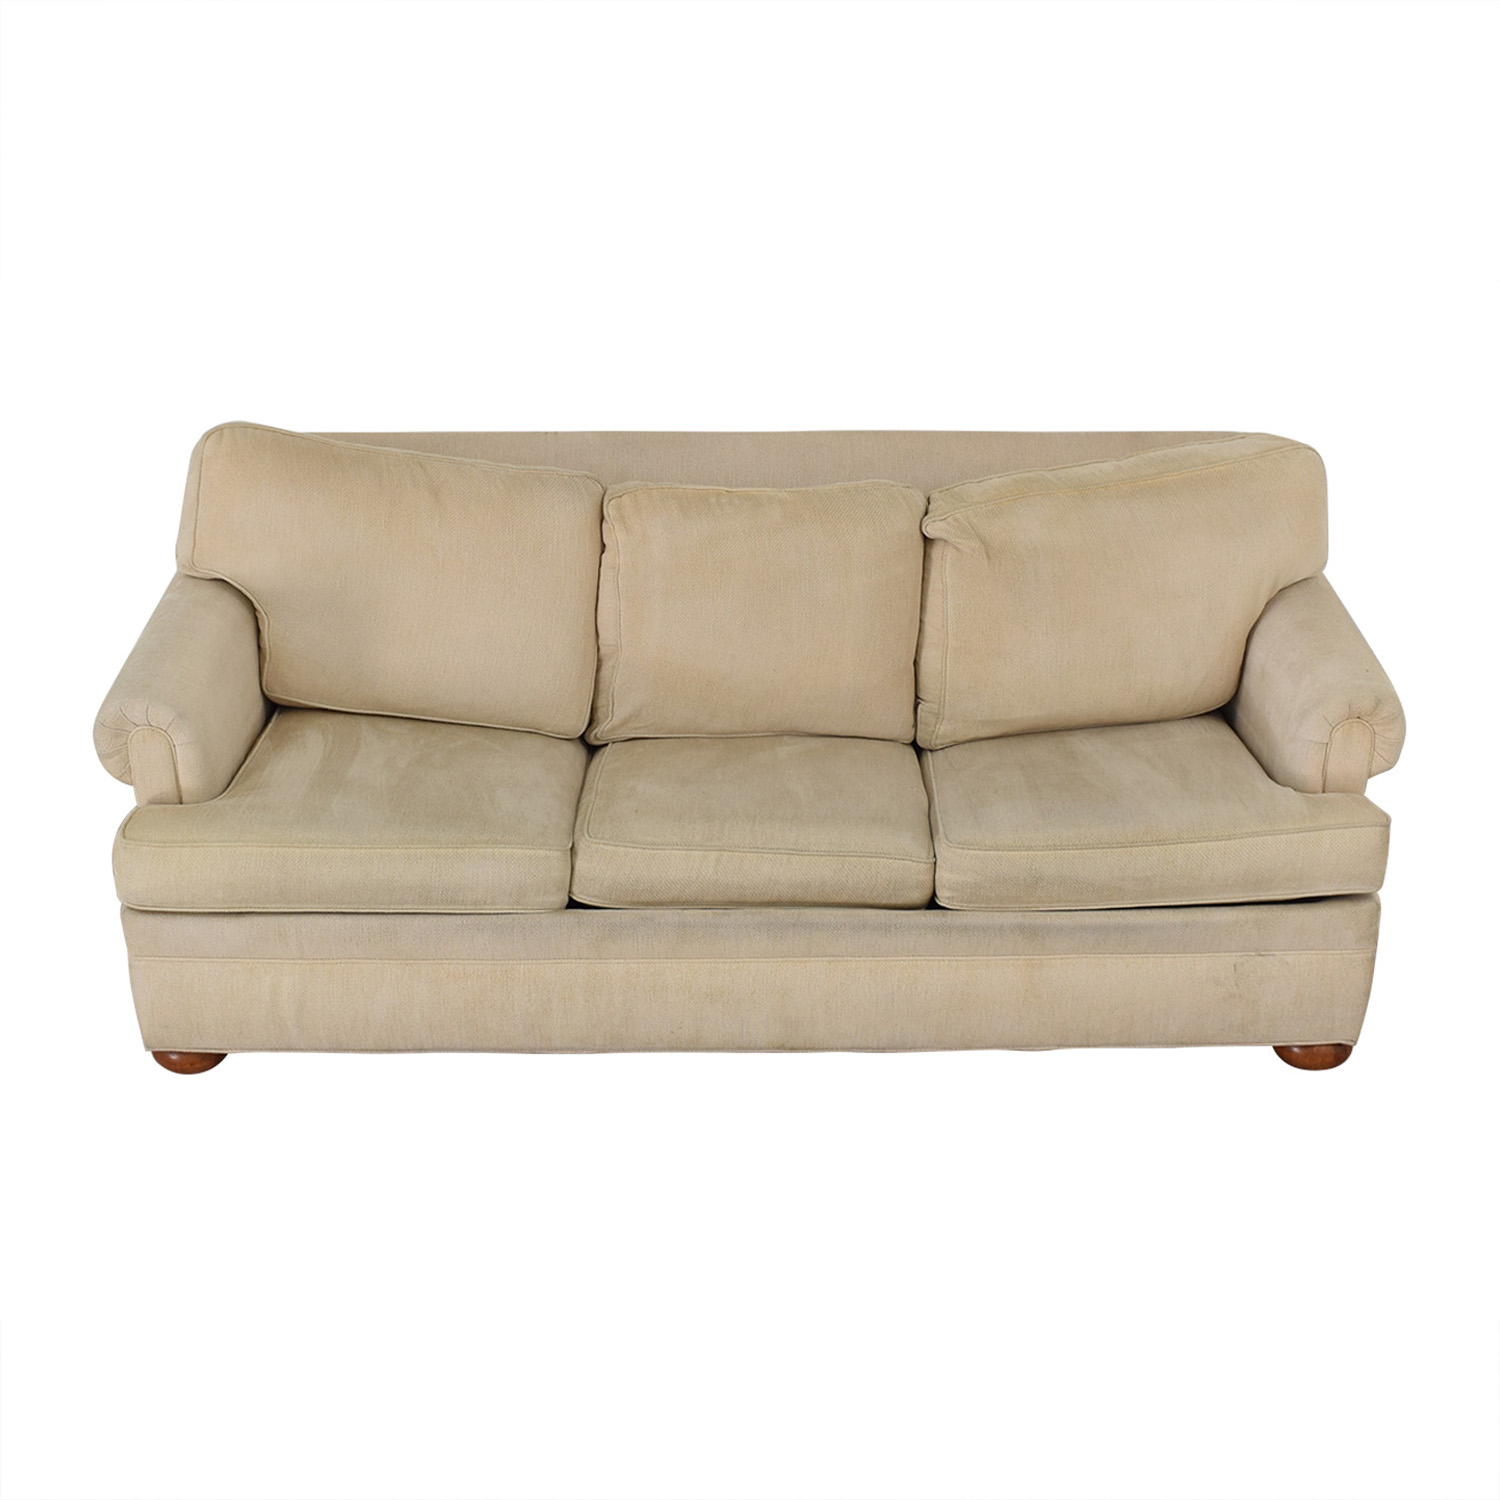 shop Ethan Allen Off White Three-Cushion Queen Convertible Sofa Ethan Allen Sofas